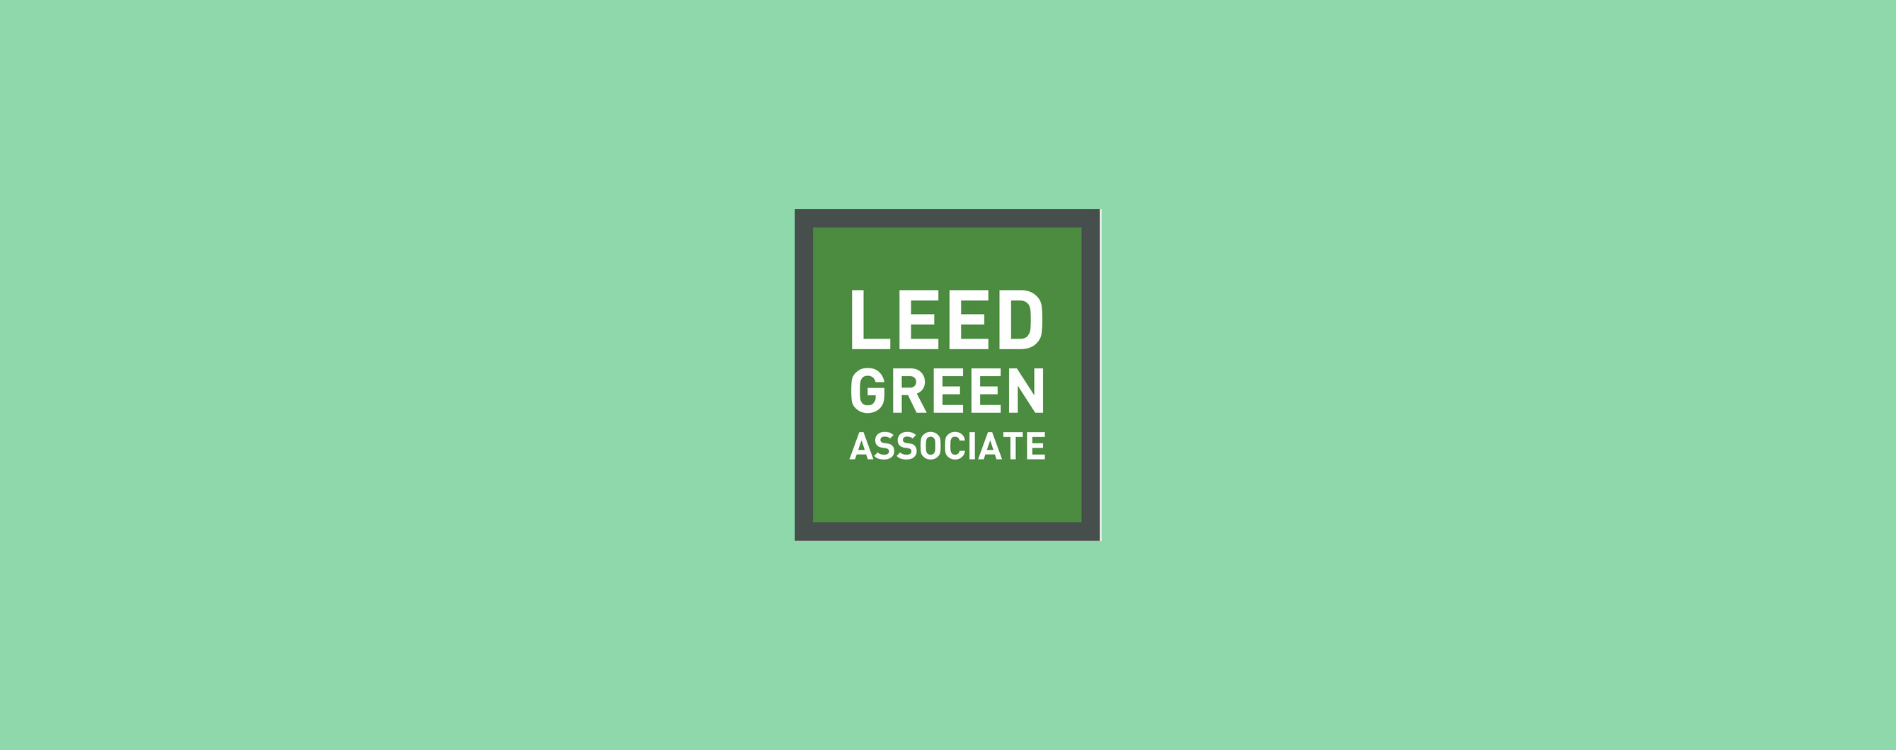 Studying for the LEED Green Associate exam